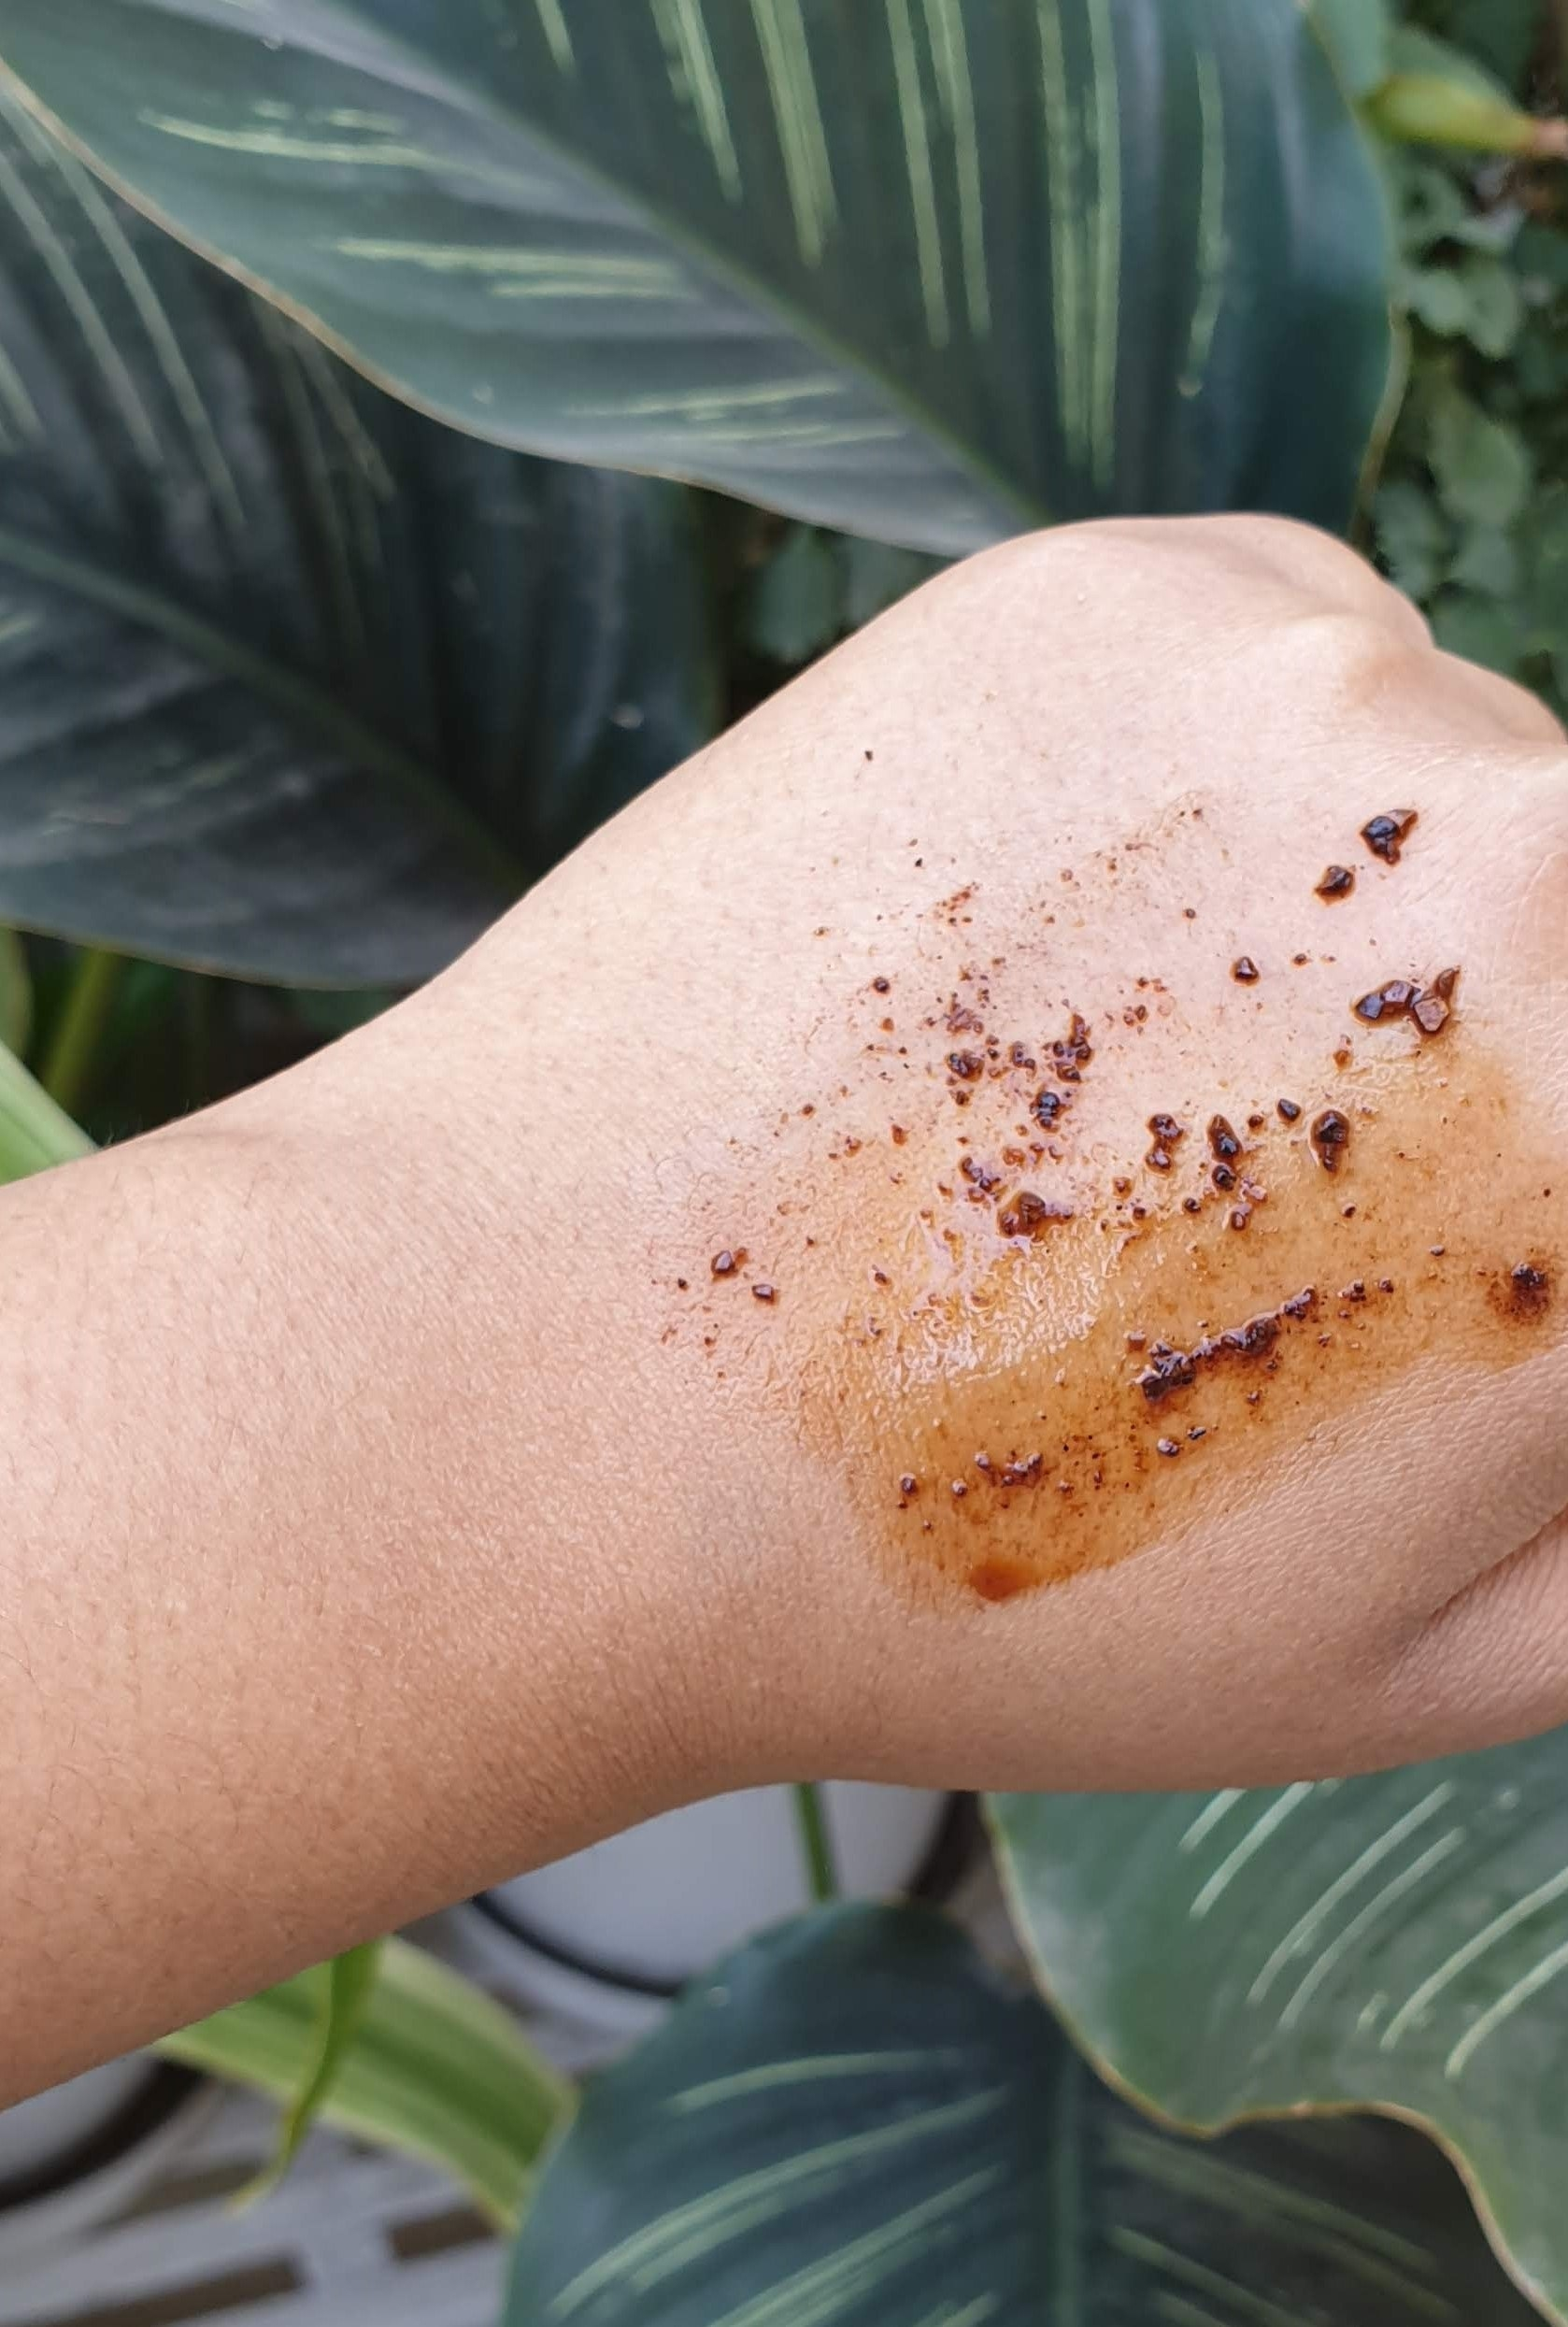 The coffee body scrub pictured on my hand, mixed with water.